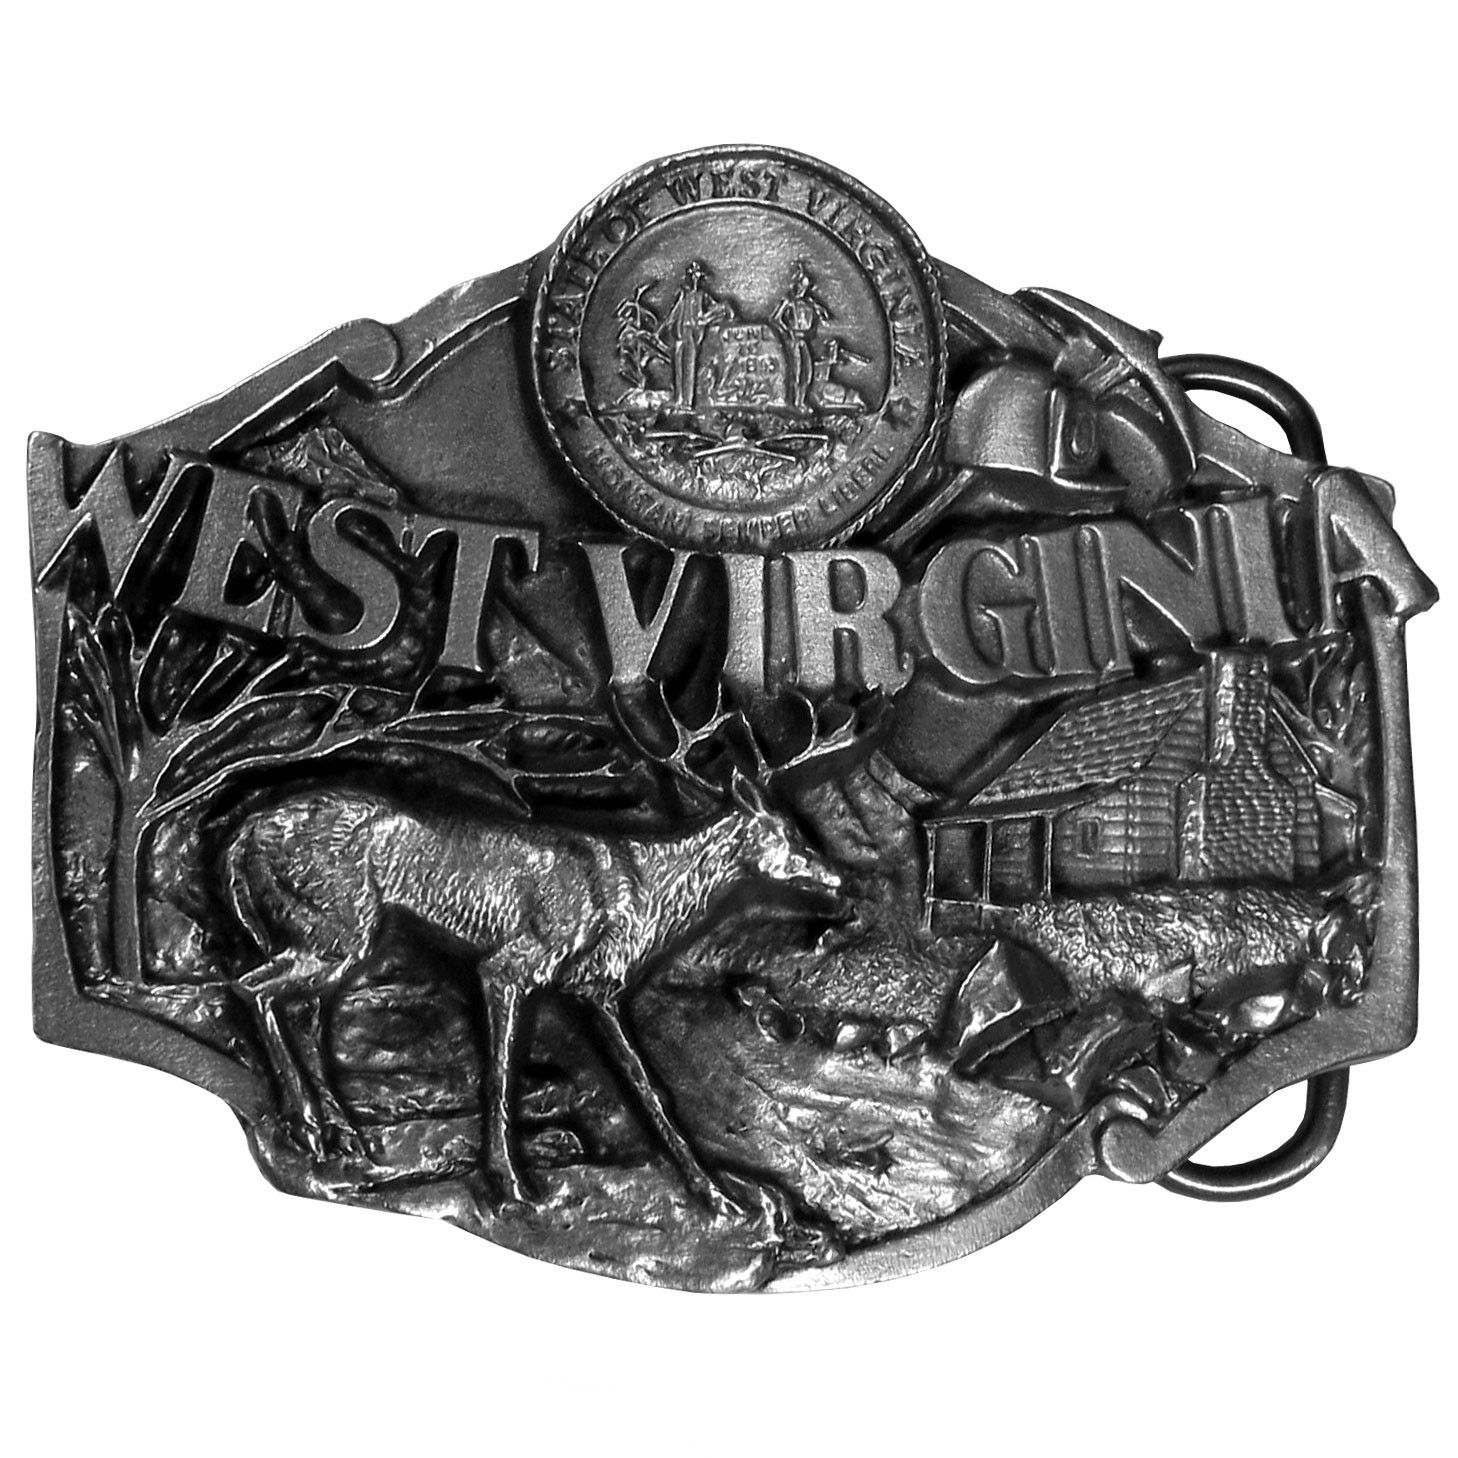 W. Virginia Antiqued Belt Buckle